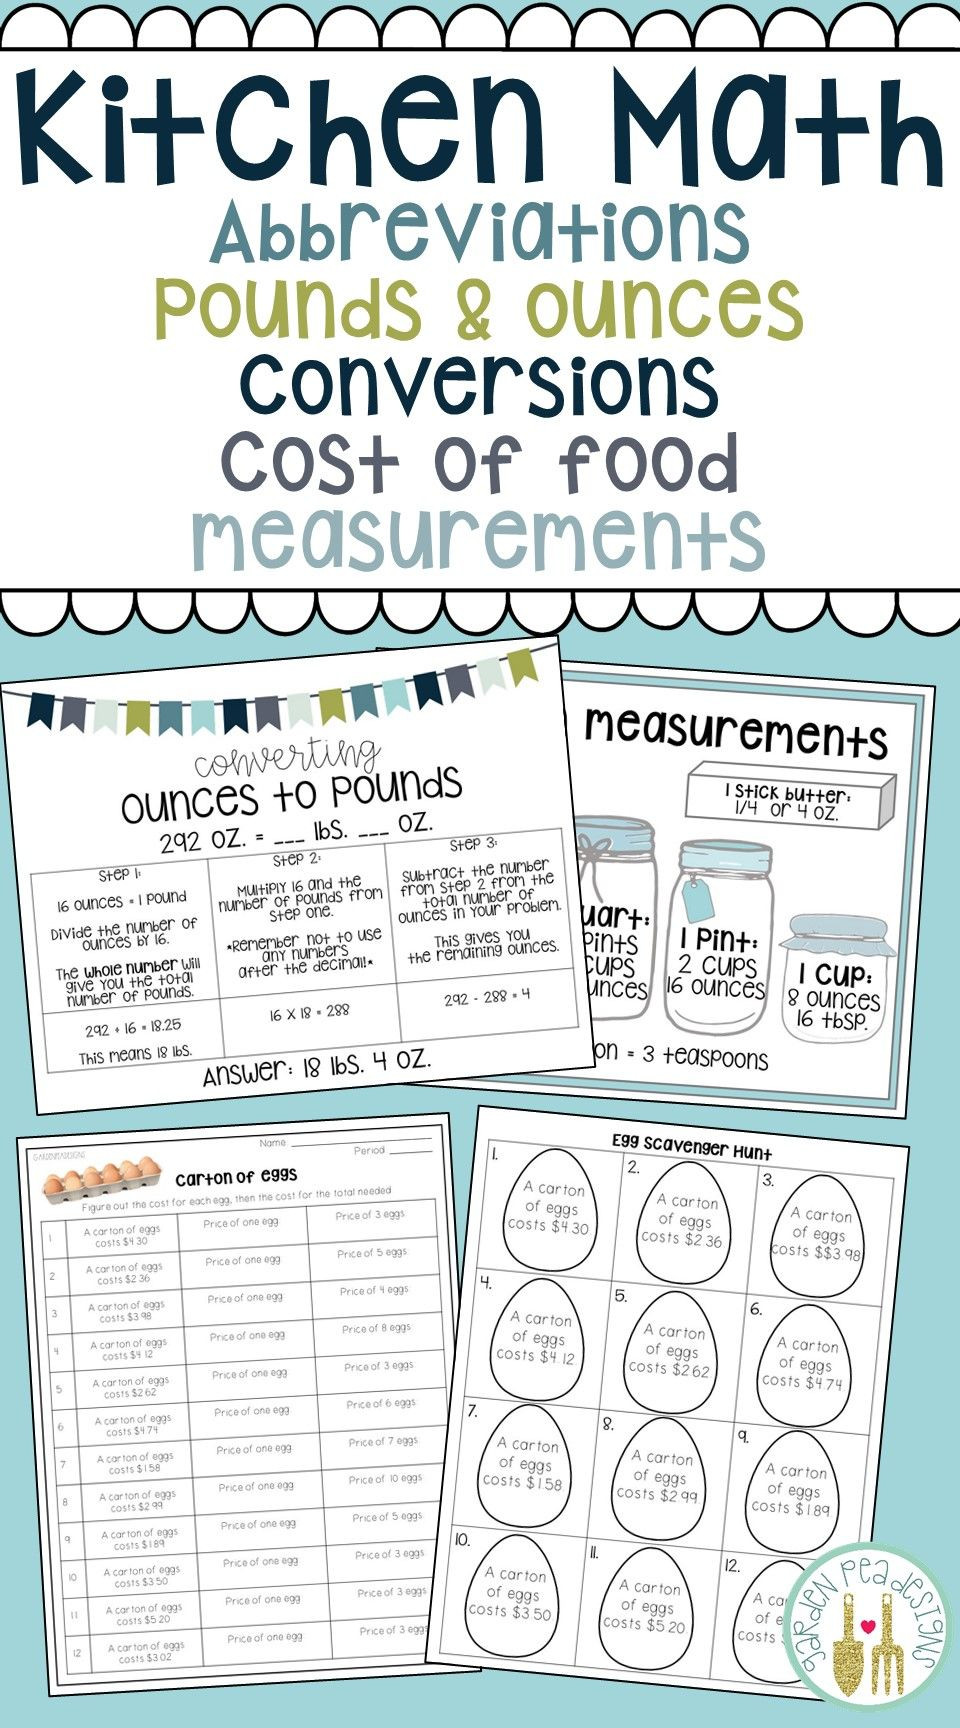 Cooking Worksheets for Middle School $5 00 Teach Kitchen Abbreviations How to Convert Pounds to